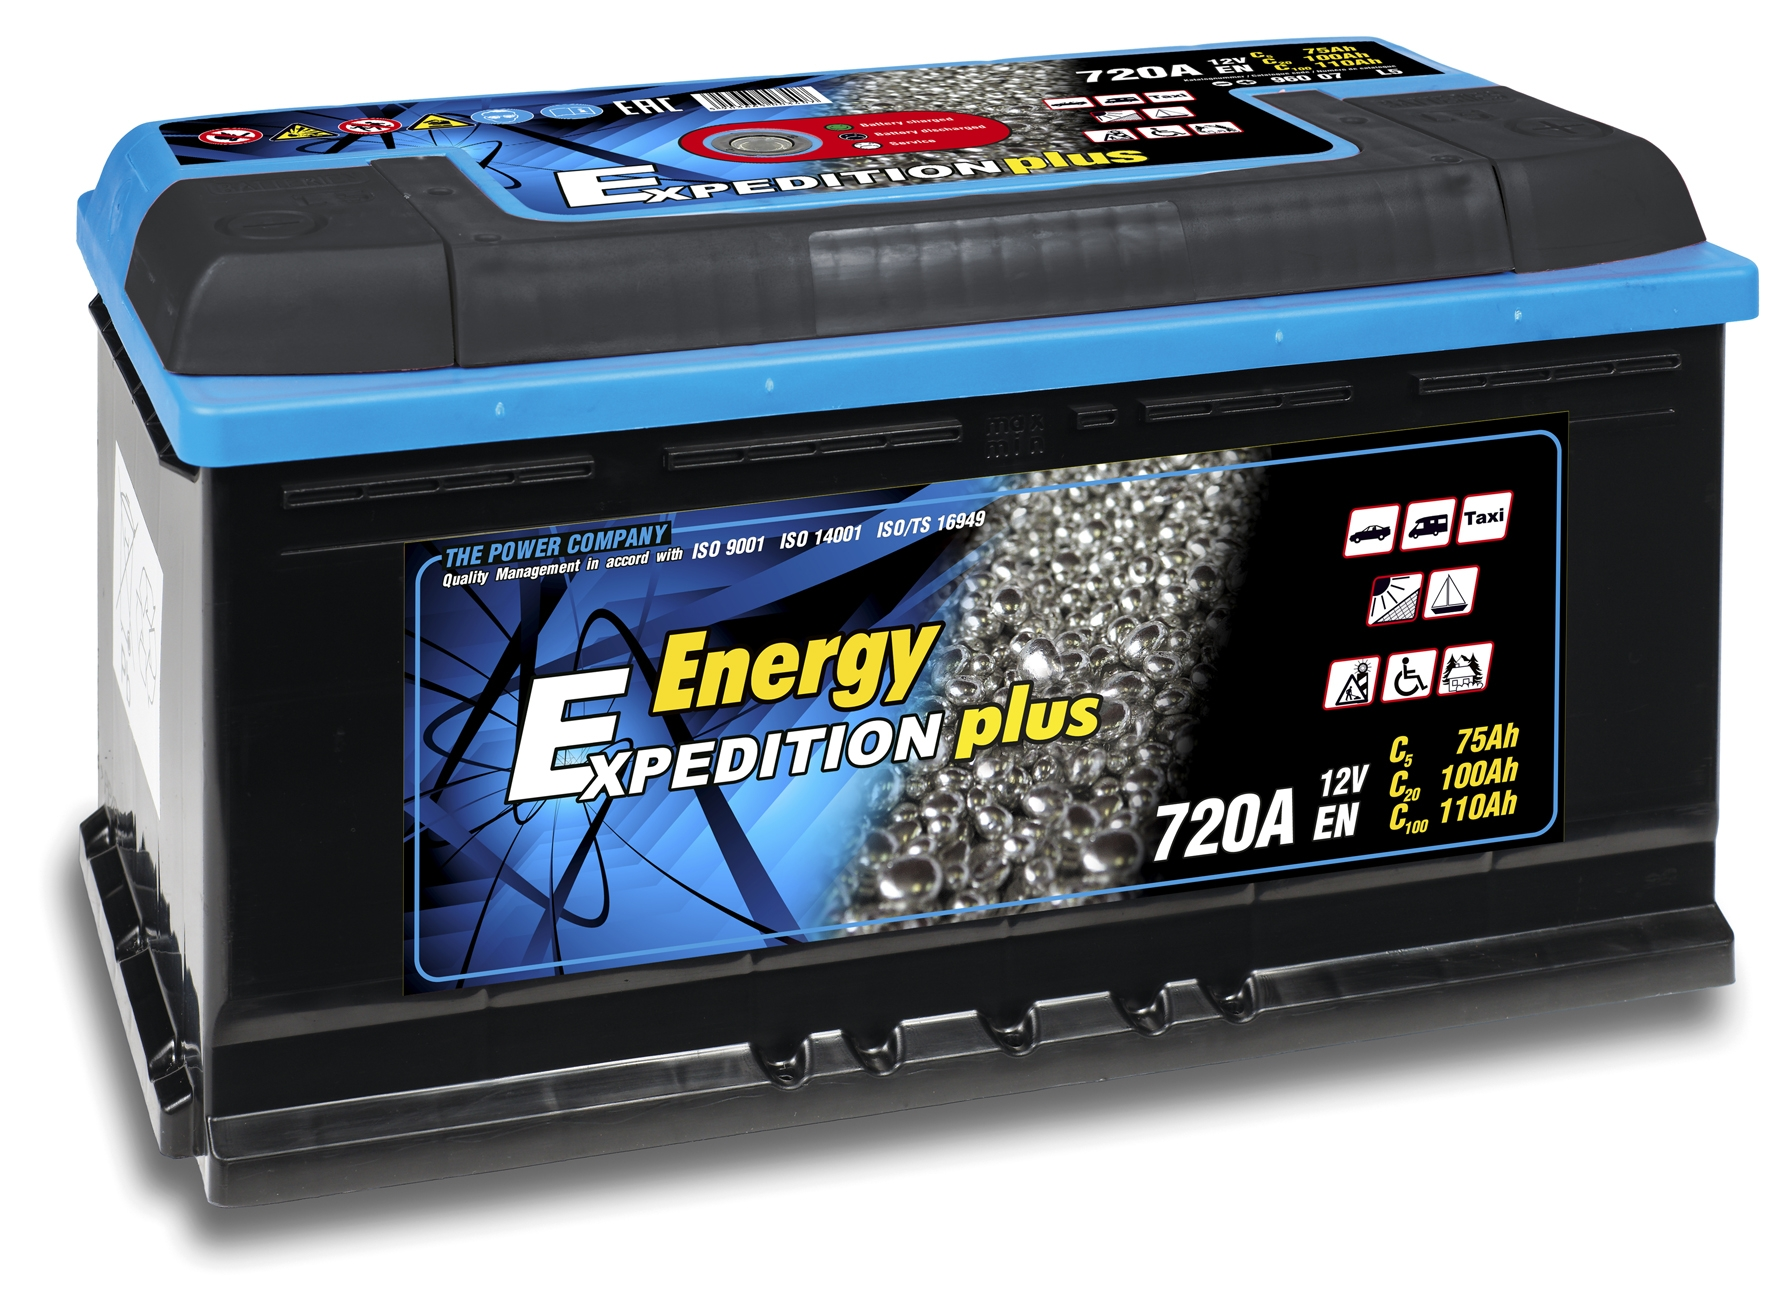 12v 110ah Expedition Plus Semi Traction Leisure Battery